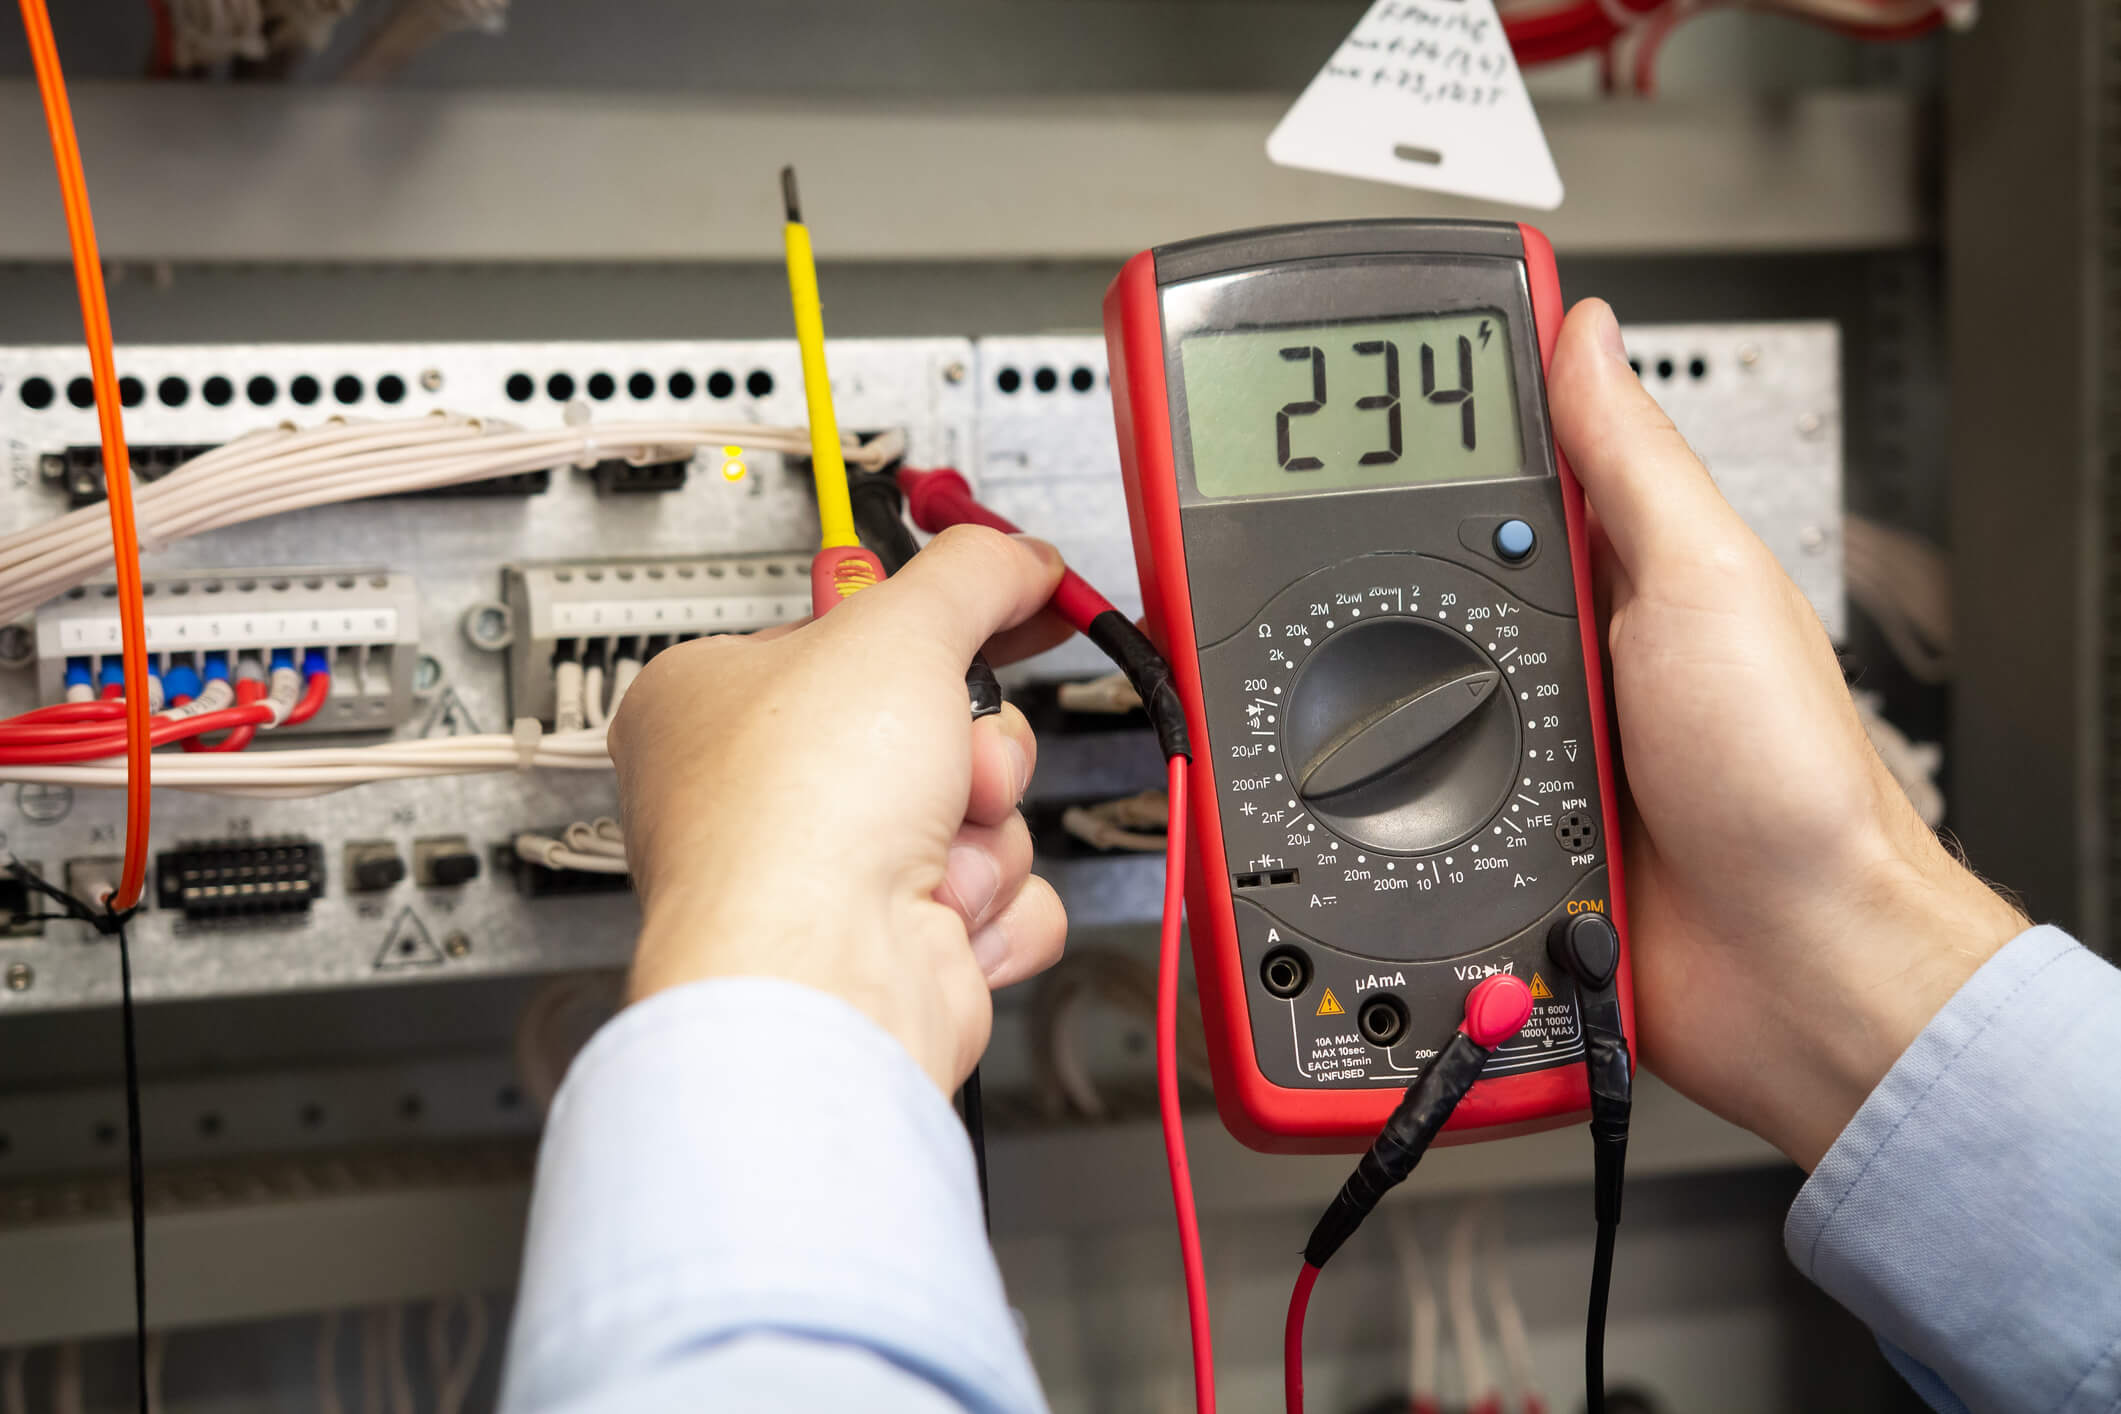 Electrician adjusts electrical control panel on power station, using tester